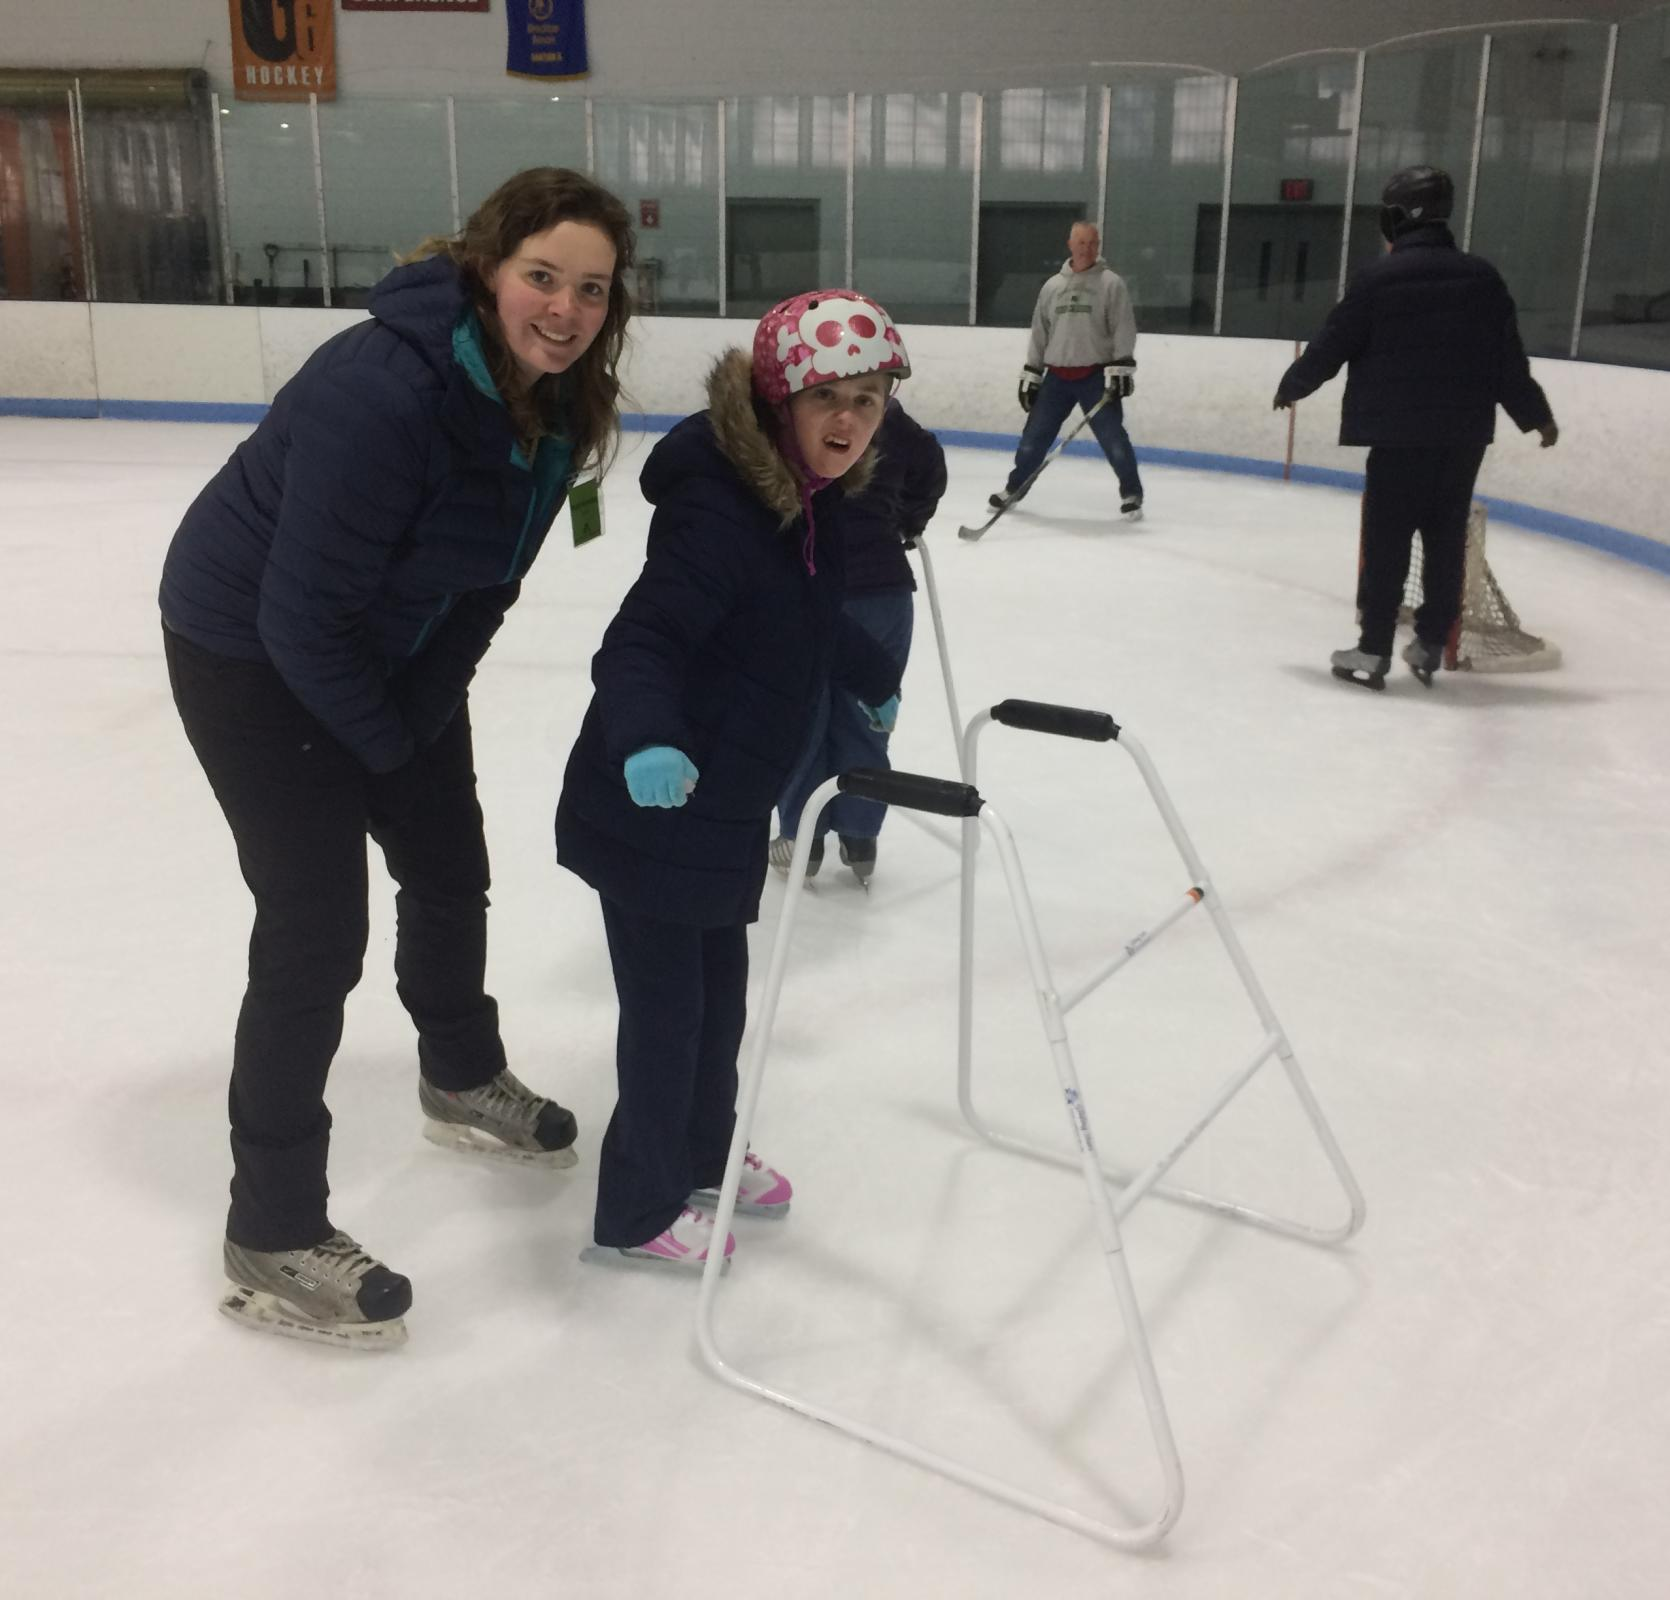 A young skater wearing a colorful helmet is standing in the foreground holding her arms out for balance. A skate walker is in front of her, and a staff member is standing behind her. They are both smiling at the camera. Behind them, two other skaters skate around a small hockey net.